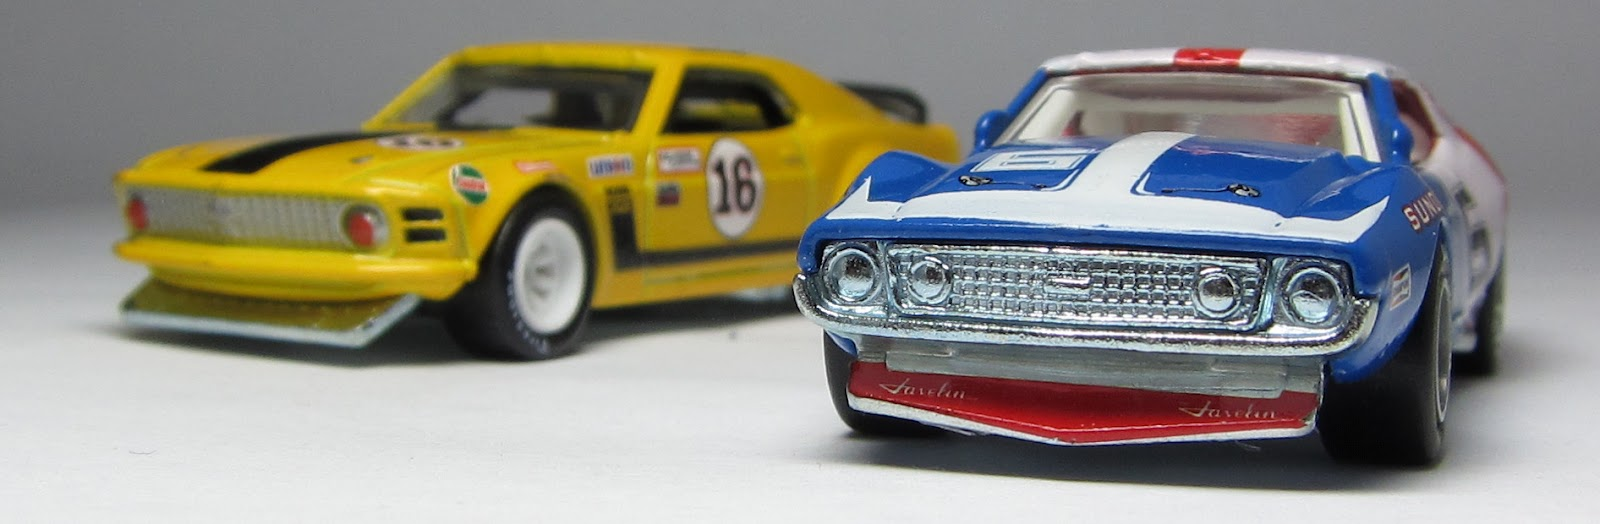 Model of the Day: Hot Wheels Marc Donohue's '71 AMC Javelin